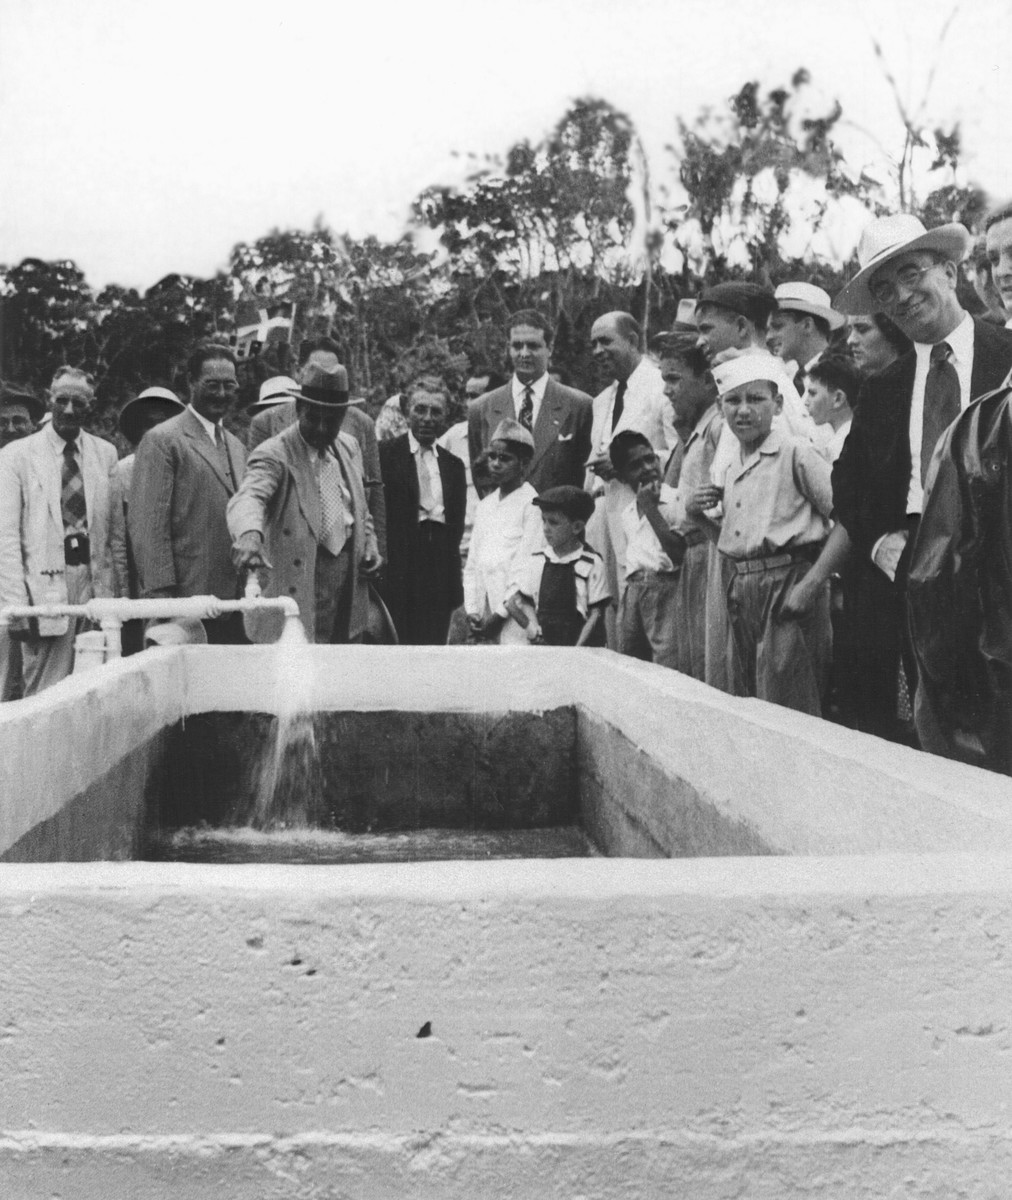 Jewish refugees and Dominicans attend the inauguration of the El Choco aqueduct in Sosua, which made possible the utilization of this mountainous region in Sosua for cattle raising.